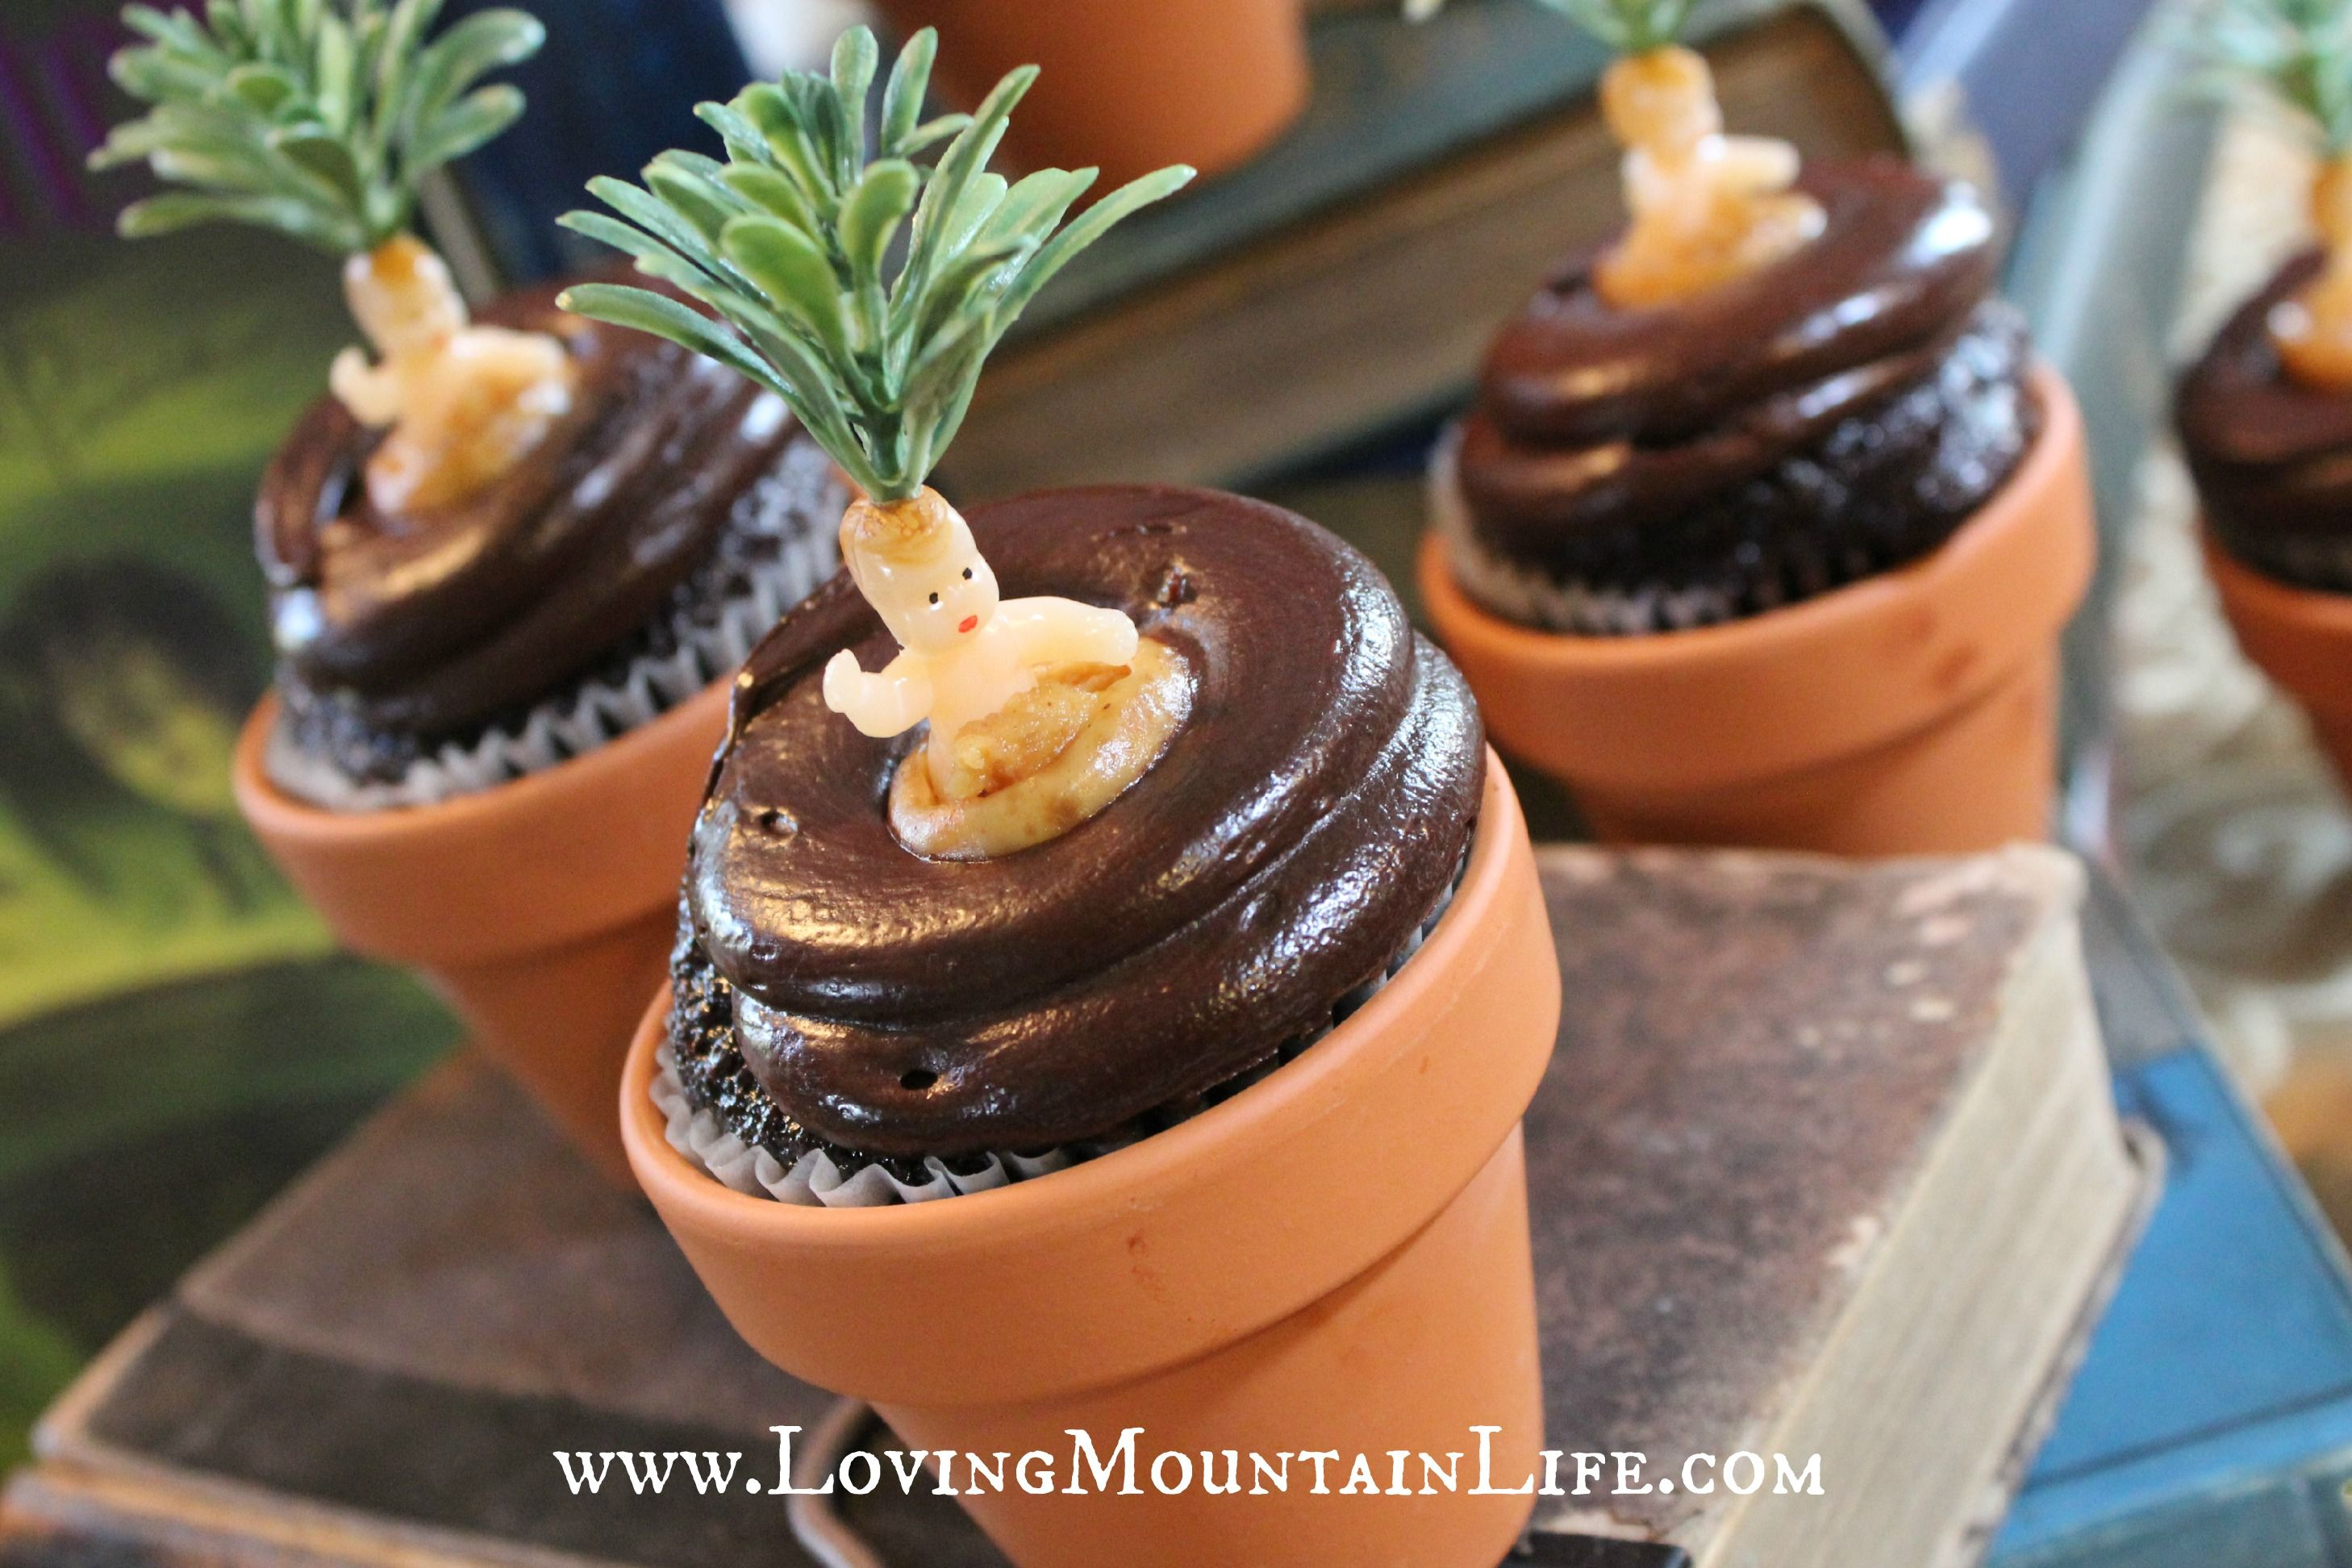 Diy Mandrake Cupcakes At A Harry Potter Party Very Clever Loving